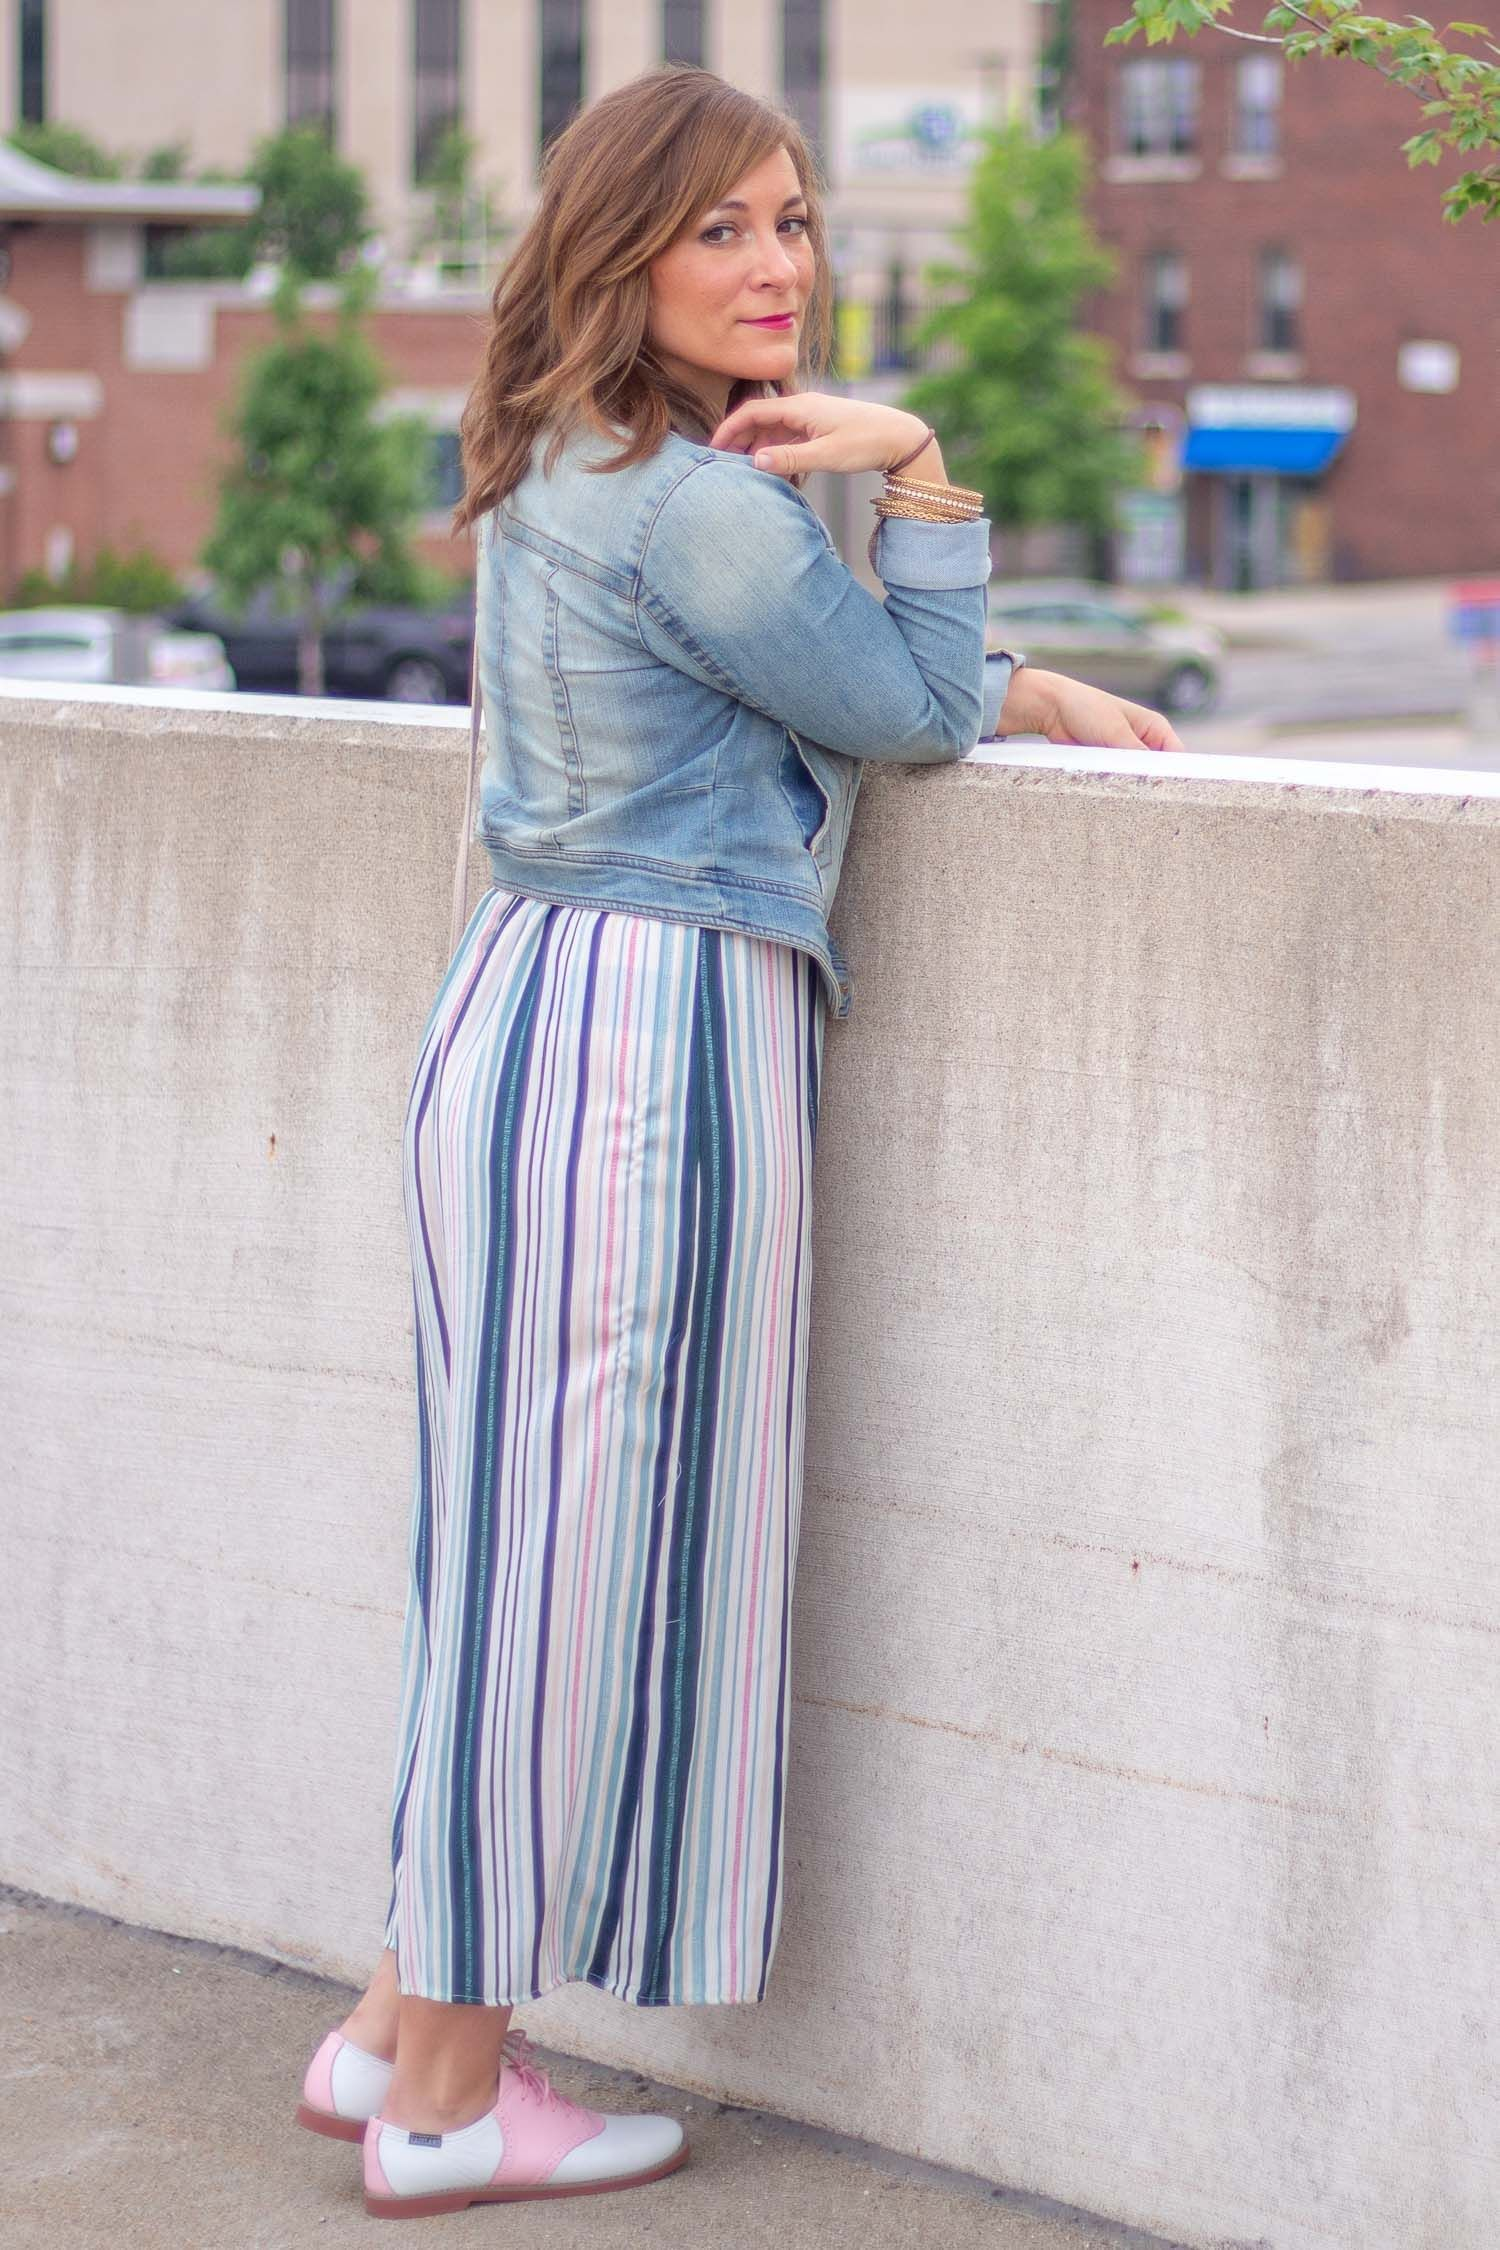 a38f915a7dfb Cute jumpsuits for summer are definitely trending right now. If you re  searching for